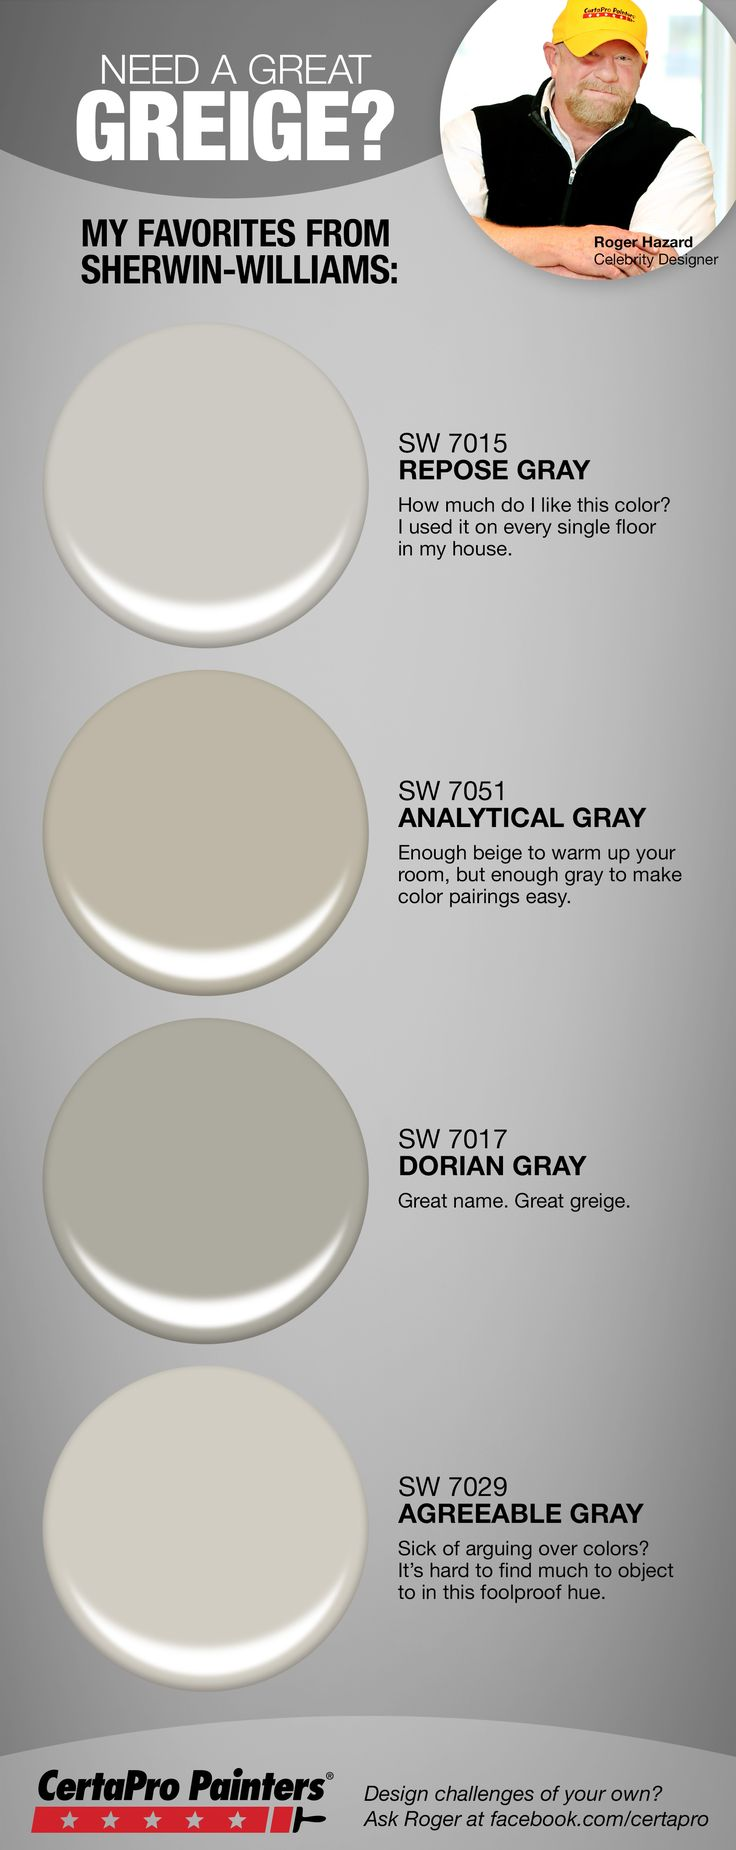 designer roger hazard shares his most popular gray beige hybrid paint colors from